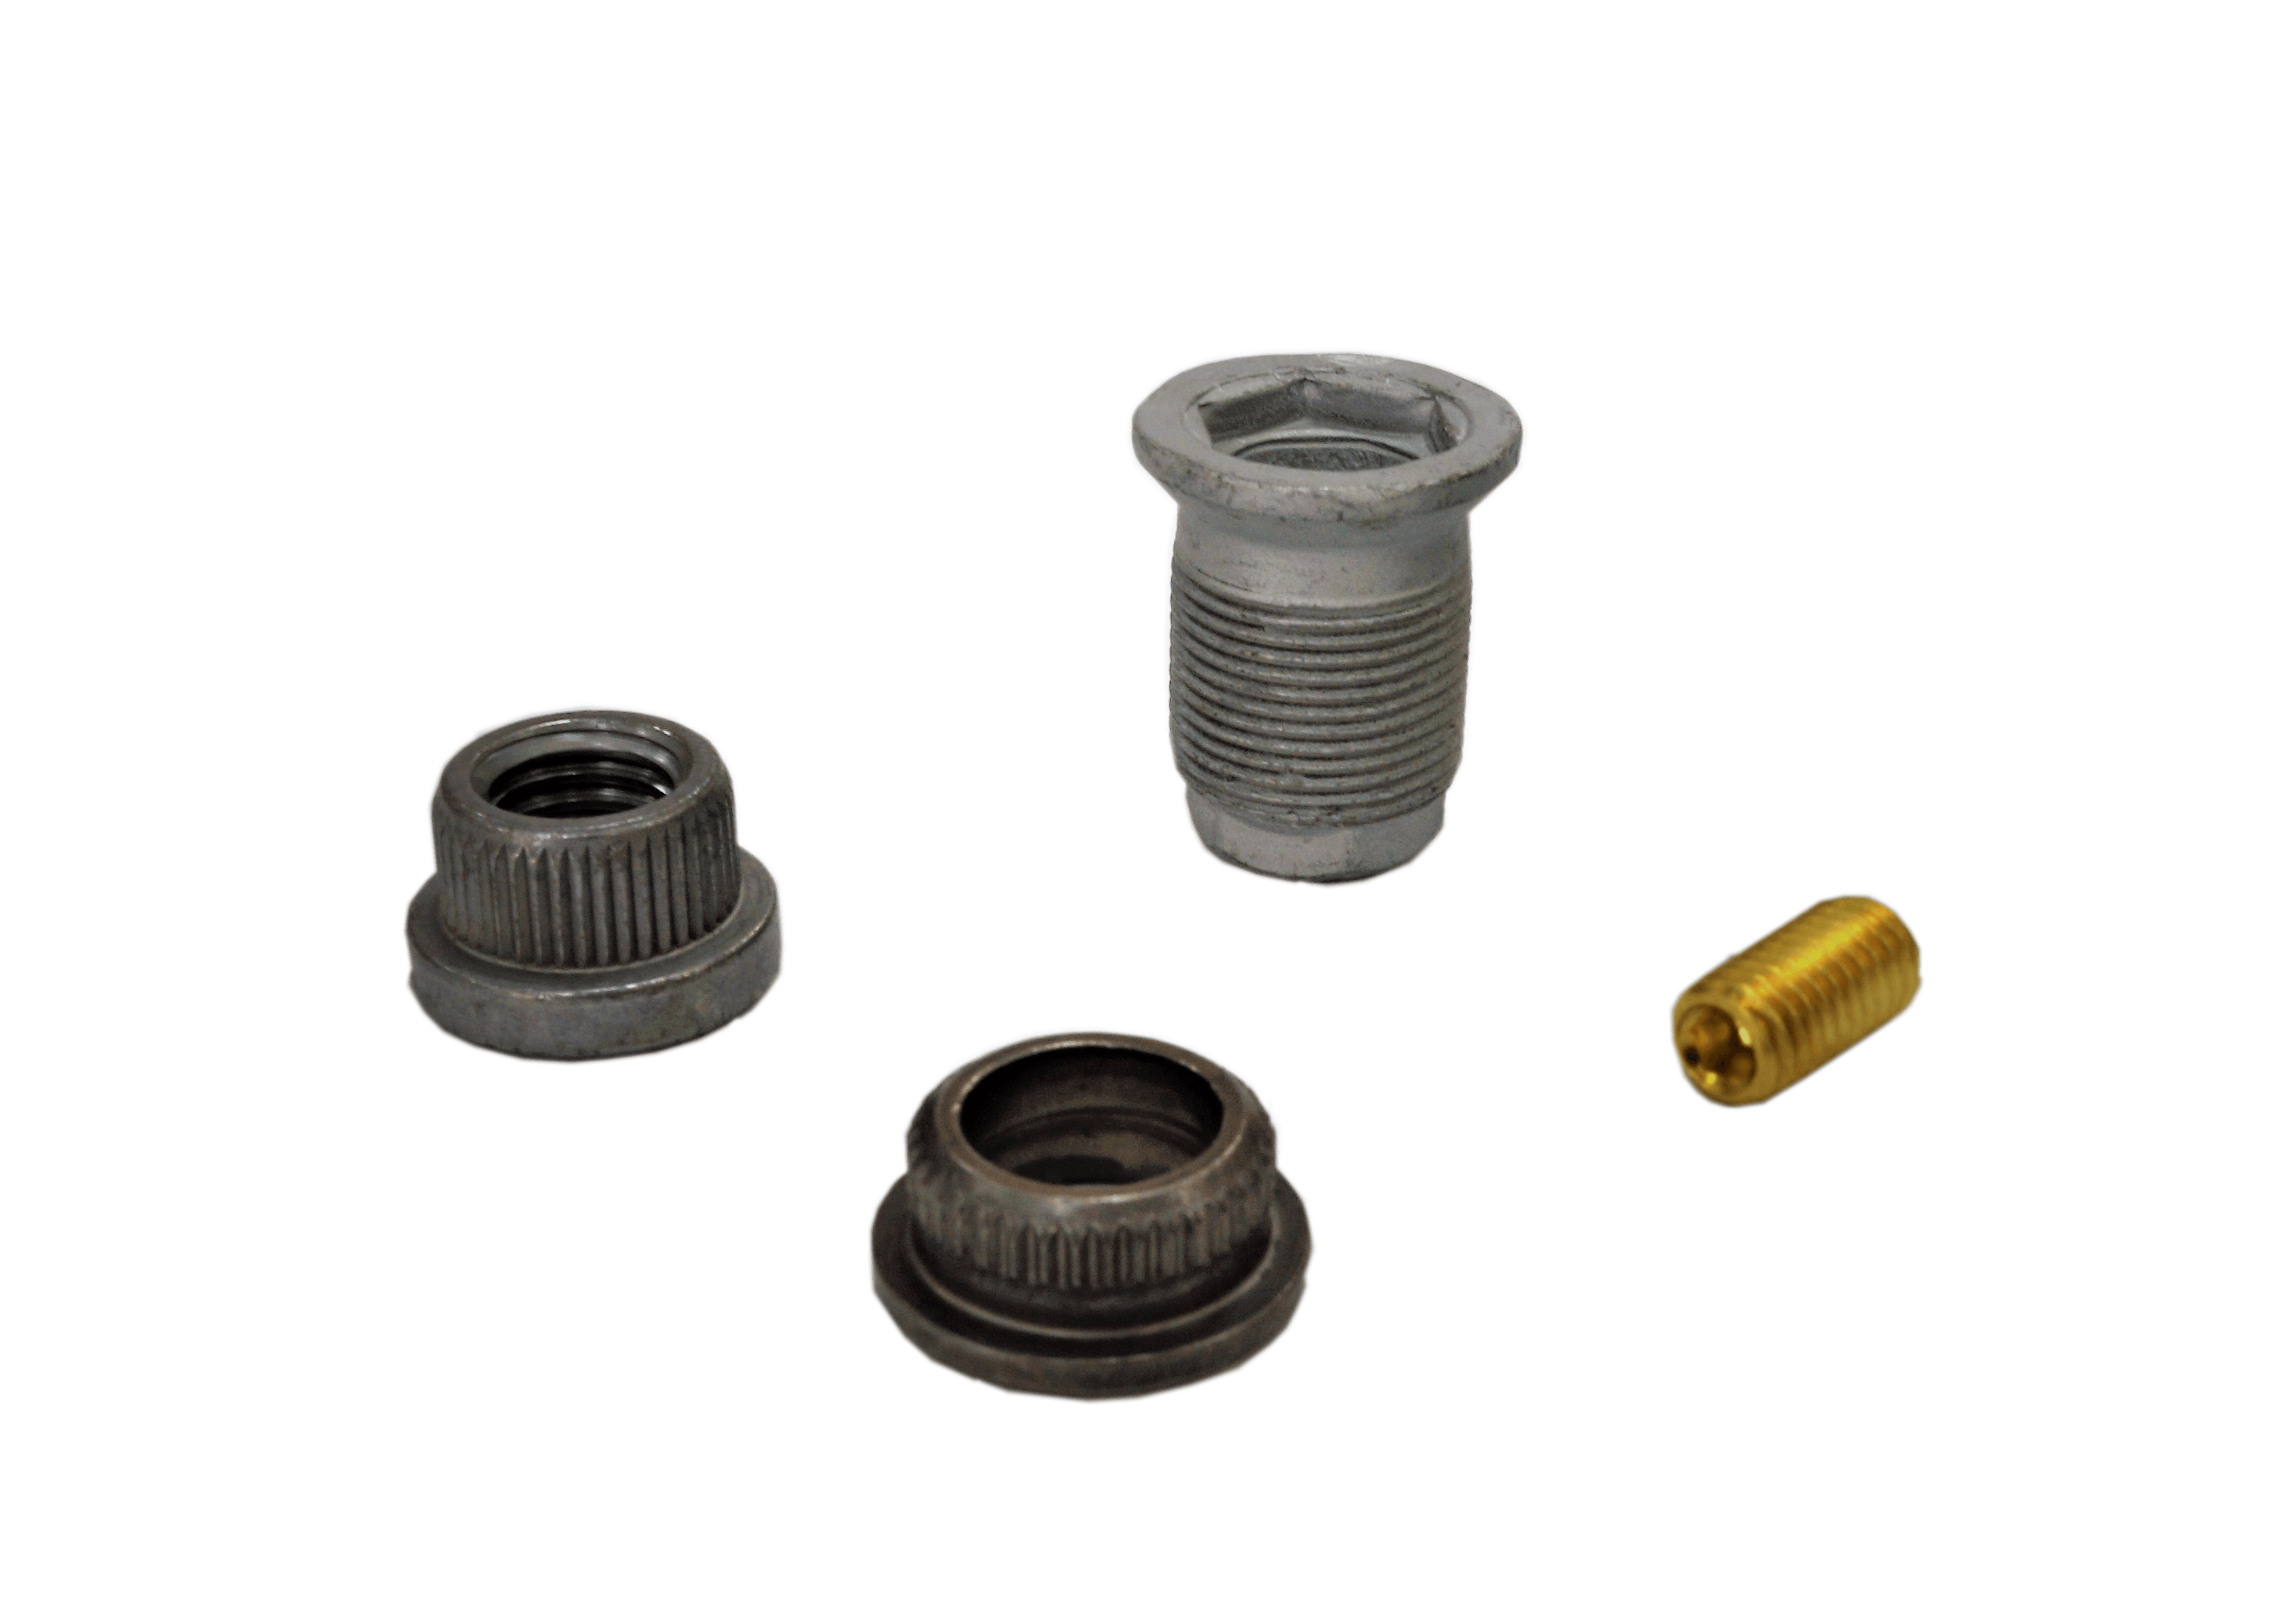 Bus Nuts for Vehicle Fastener made by Sunny Screw Industry 三能螺栓工業股份有限公司 - MatchSupplier.com